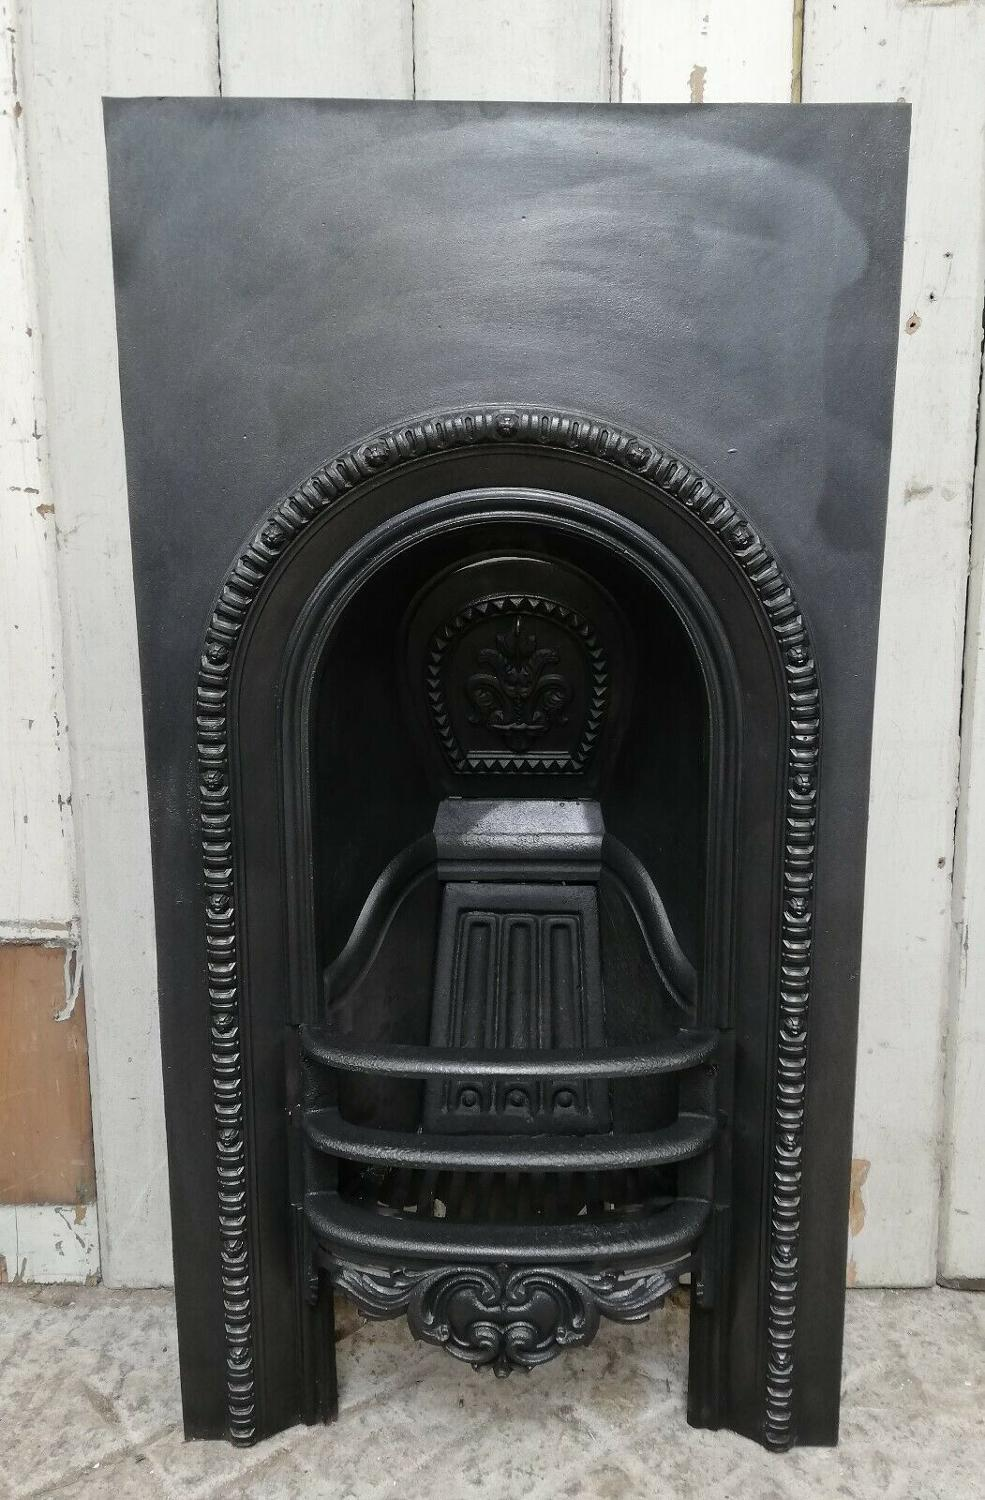 FI0030 AN ANTIQUE VICTORIAN CAST IRON BEDROOM FIRE INSERT